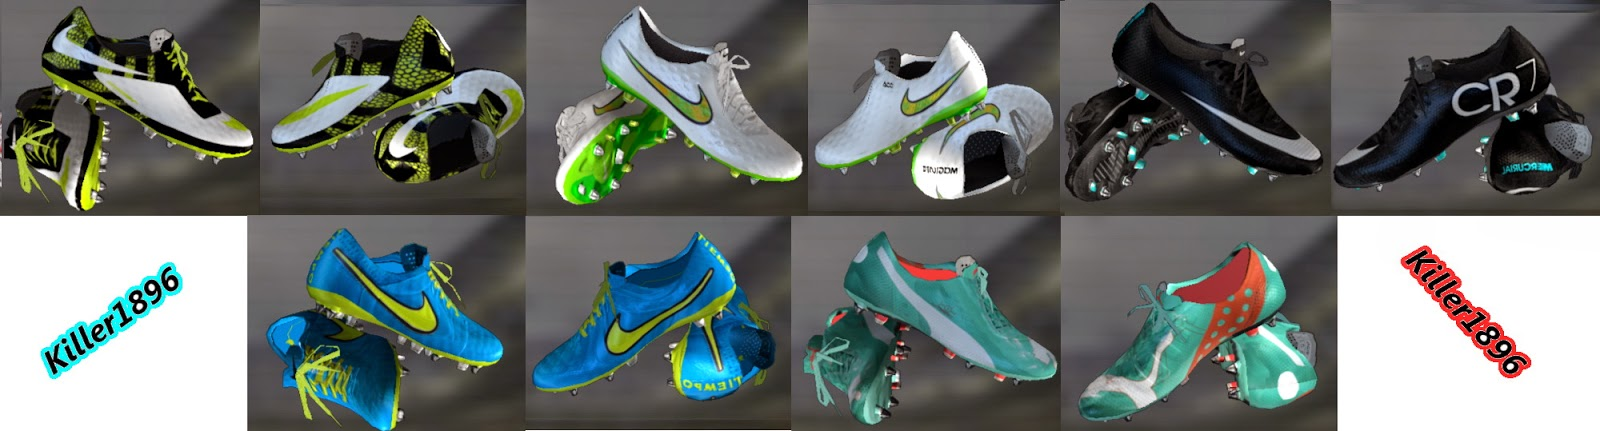 PES 2013 New Mini Bootpack by killer1896